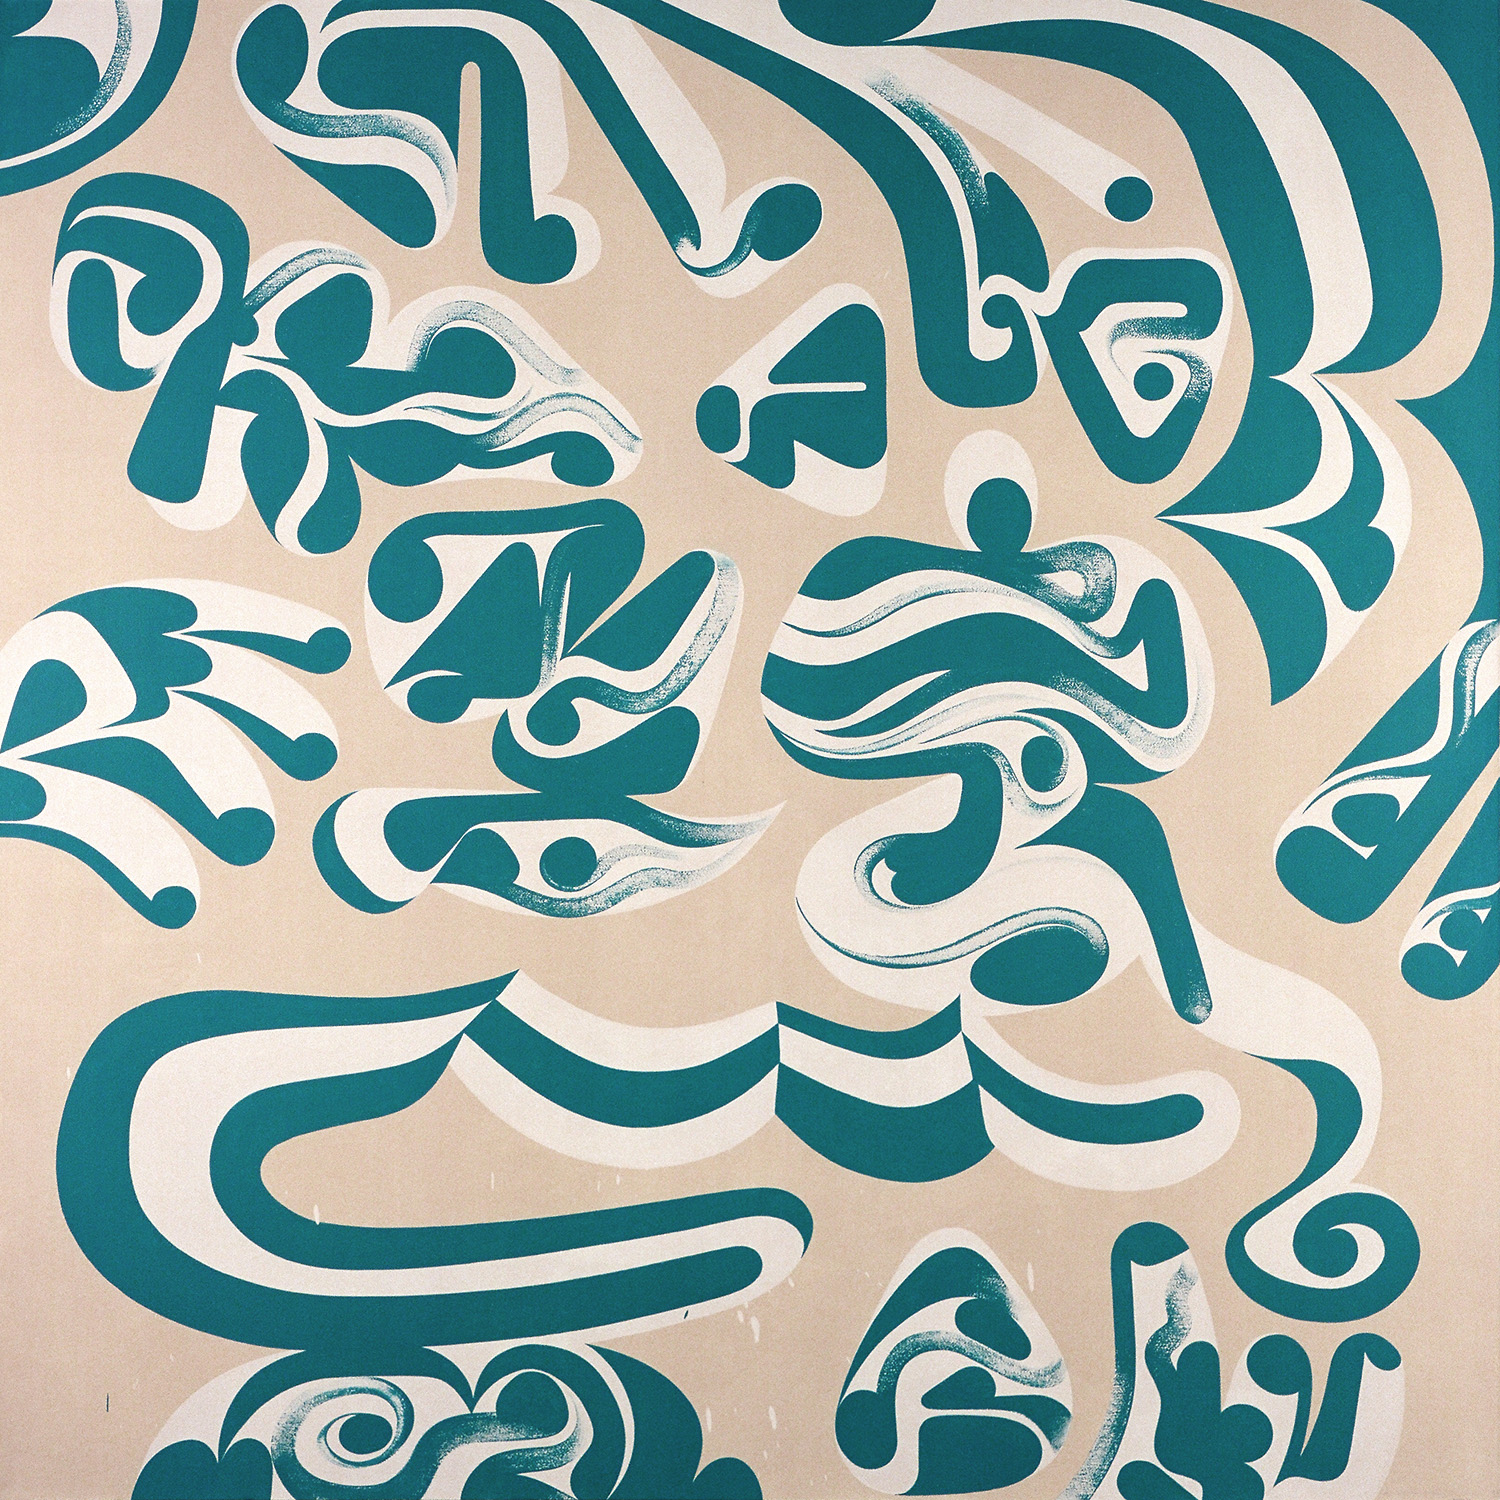 Blues Fingers, 2003 acrylic on canvas 54 x 54 inch